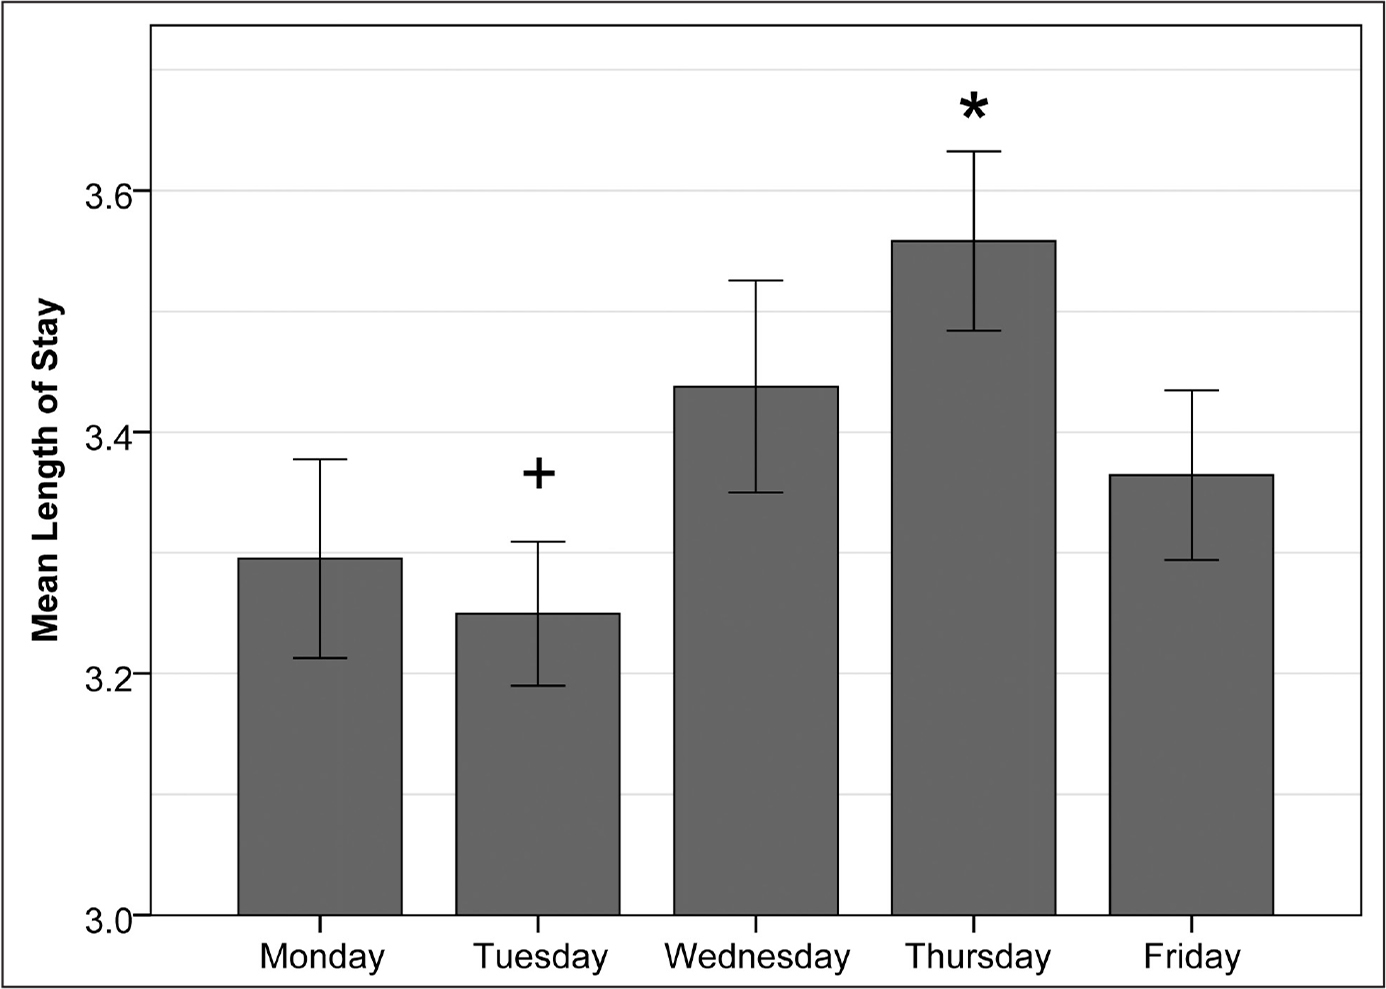 Mean length of stay based on surgical day of the week for patients being discharged to an extended care facility. Error bars represent the 95% confidence interval. Thursday varied significantly from every other day of the week (*), and Tuesday varied significantly from Thursday and Friday (+).